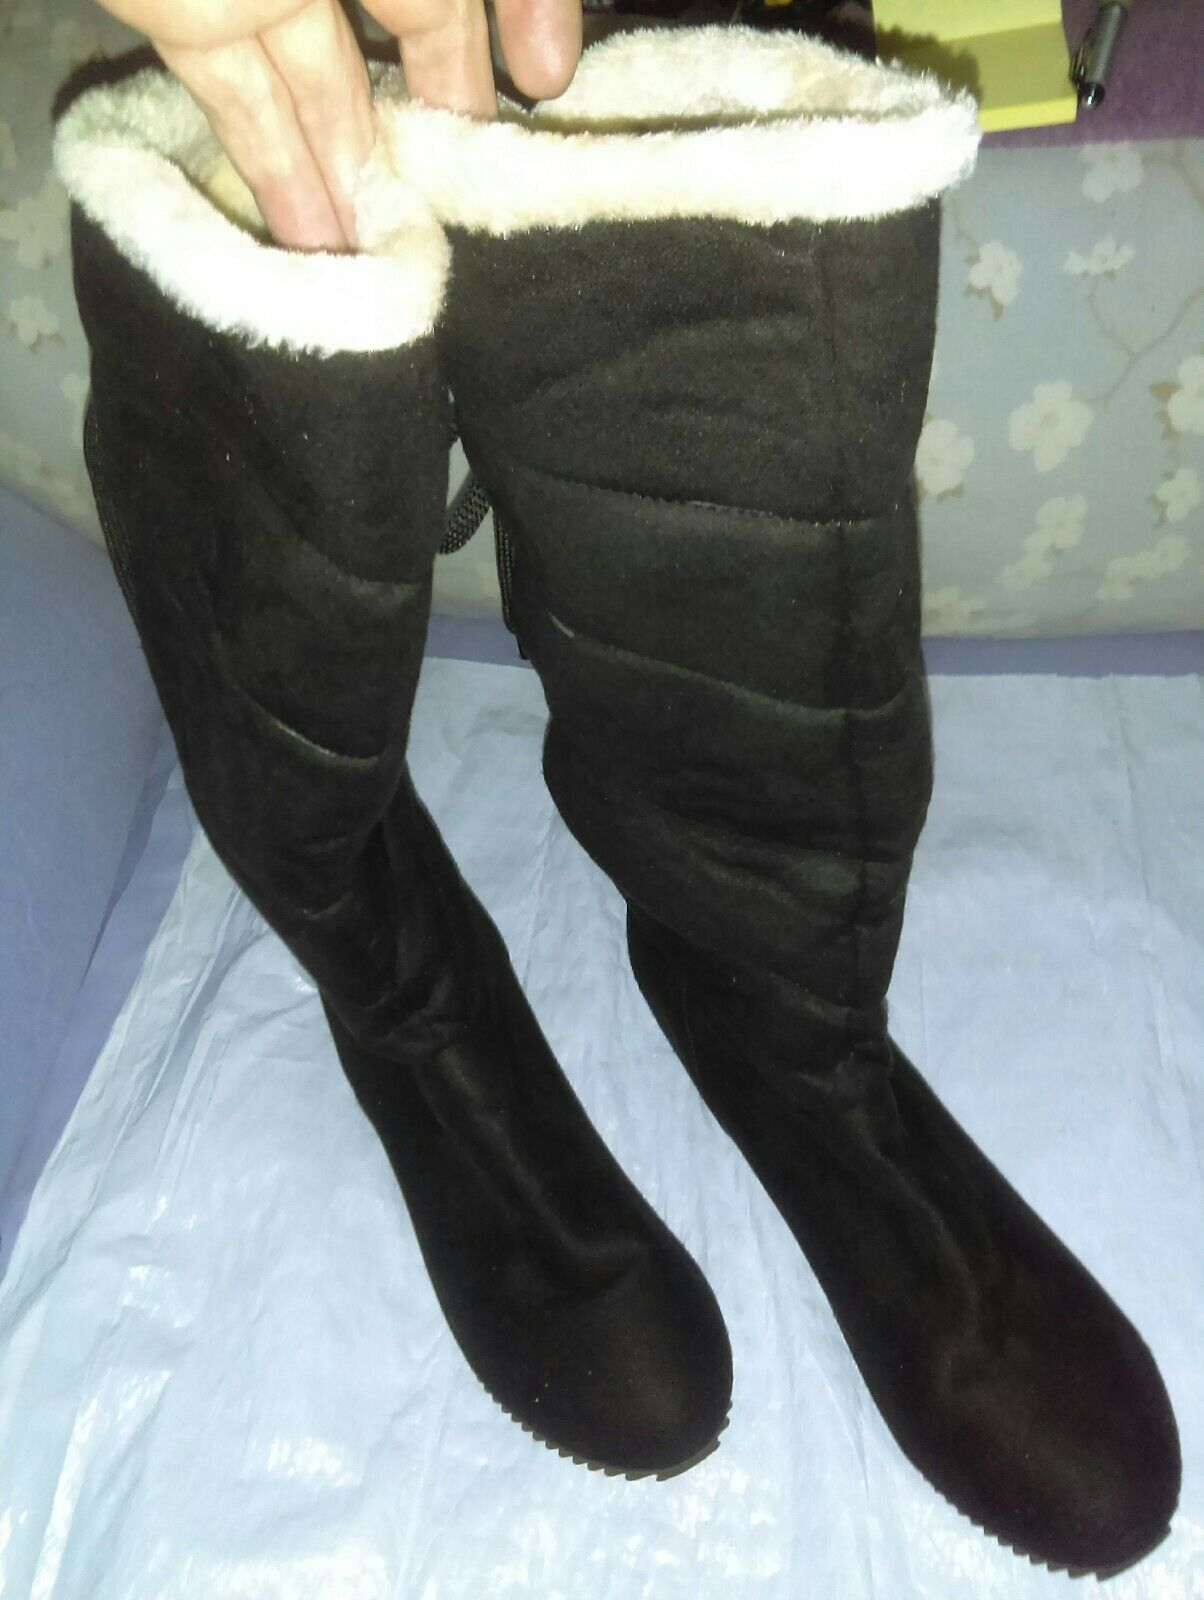 Brand New Black Suede Warm Water-resistant Winter Boots Womens 10.5